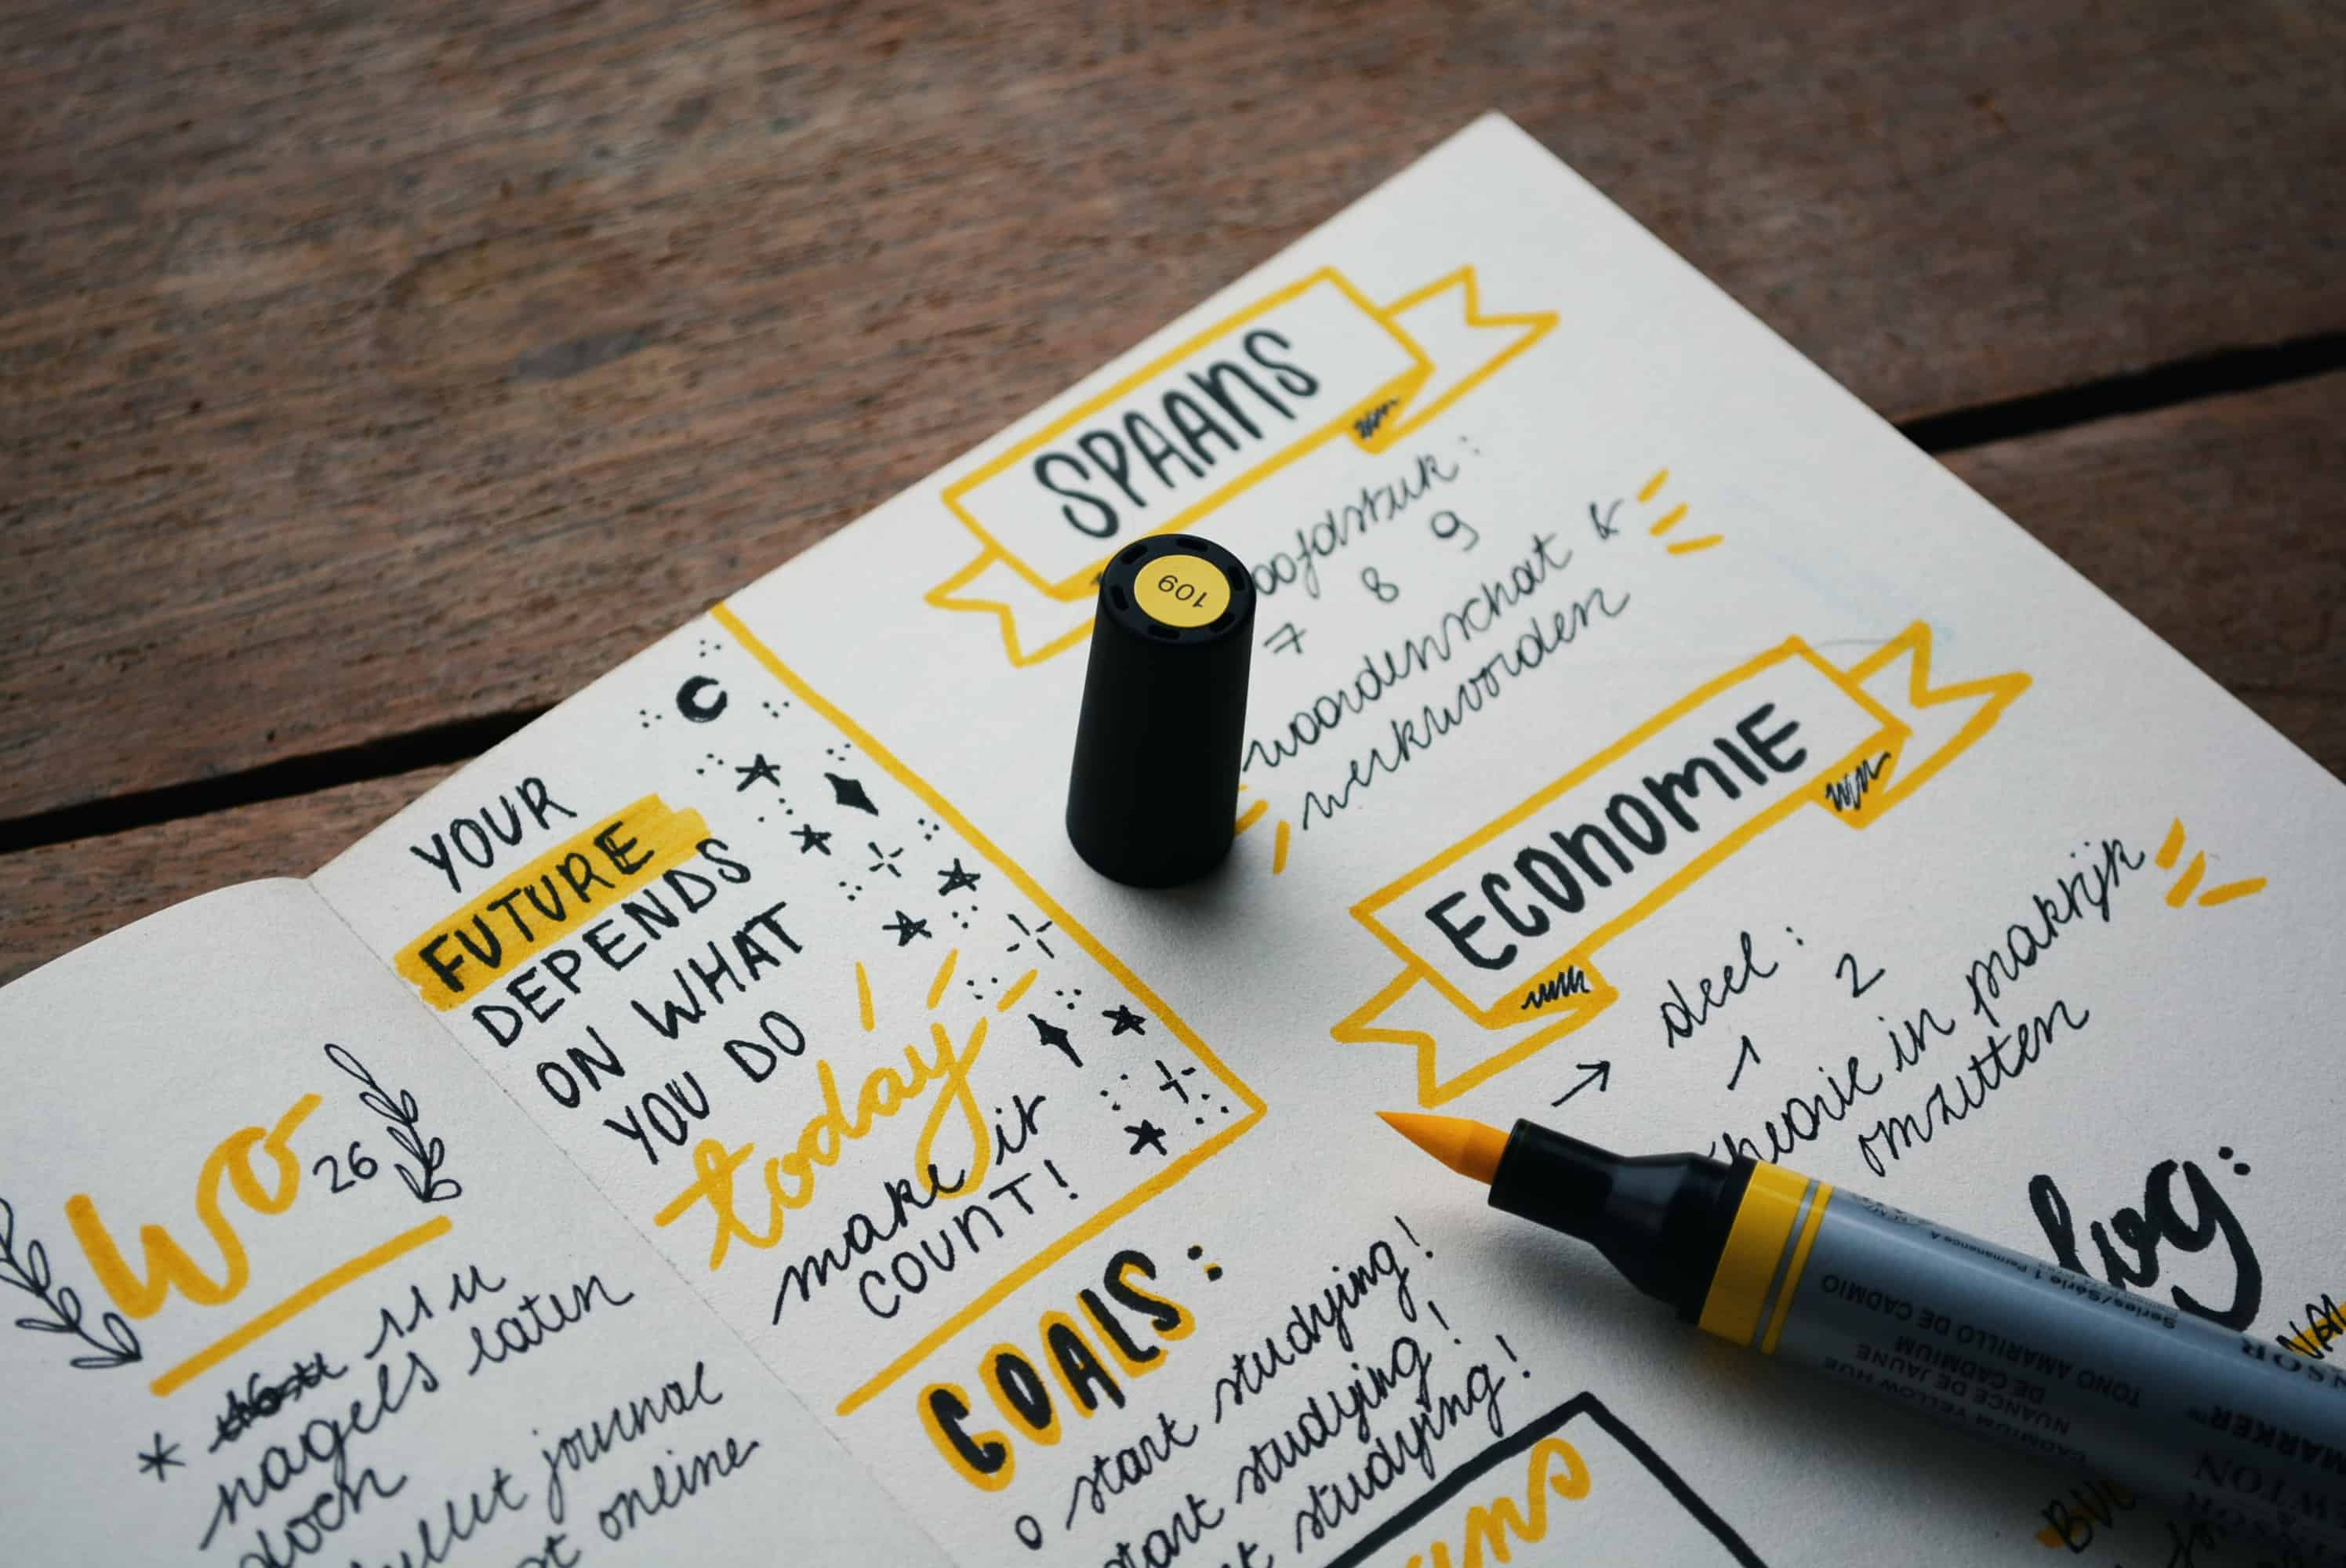 Cope with Anxiety by Creating a Self-Care Routine - Start a Bullet Journal